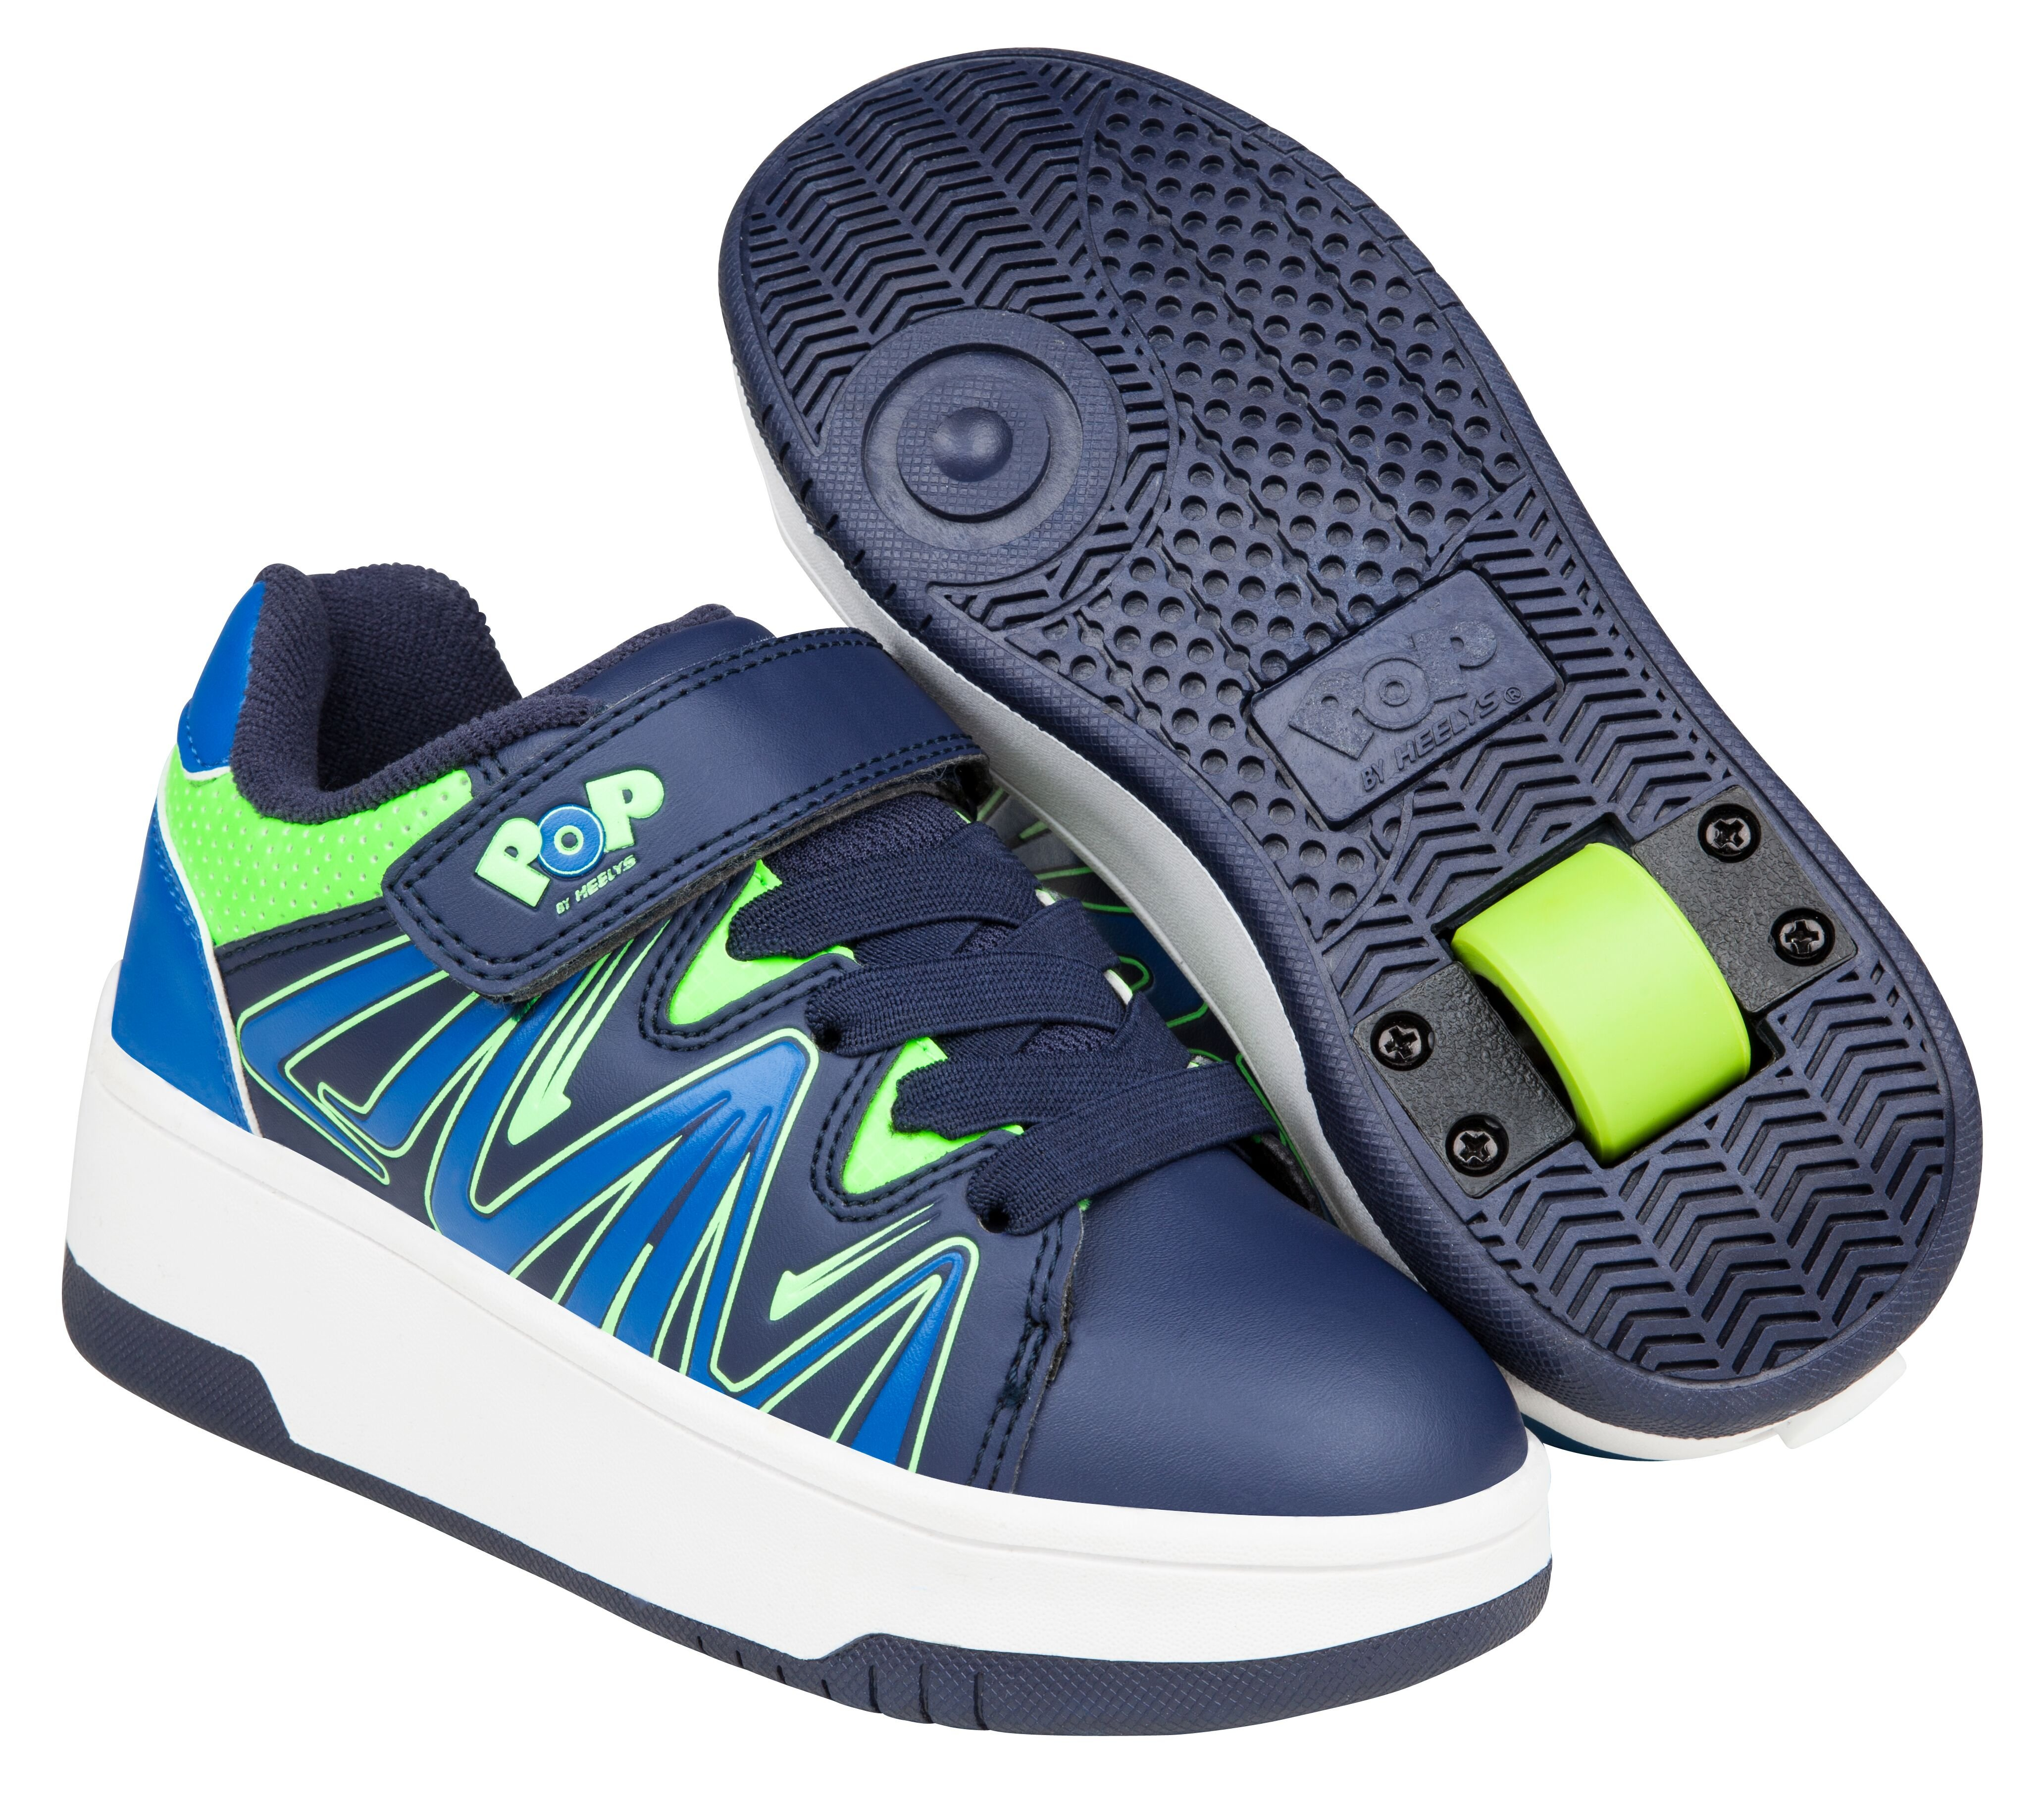 Heelys - Burst - Navy/Royal/Lime - Size 32 (POP-B1W-0009=